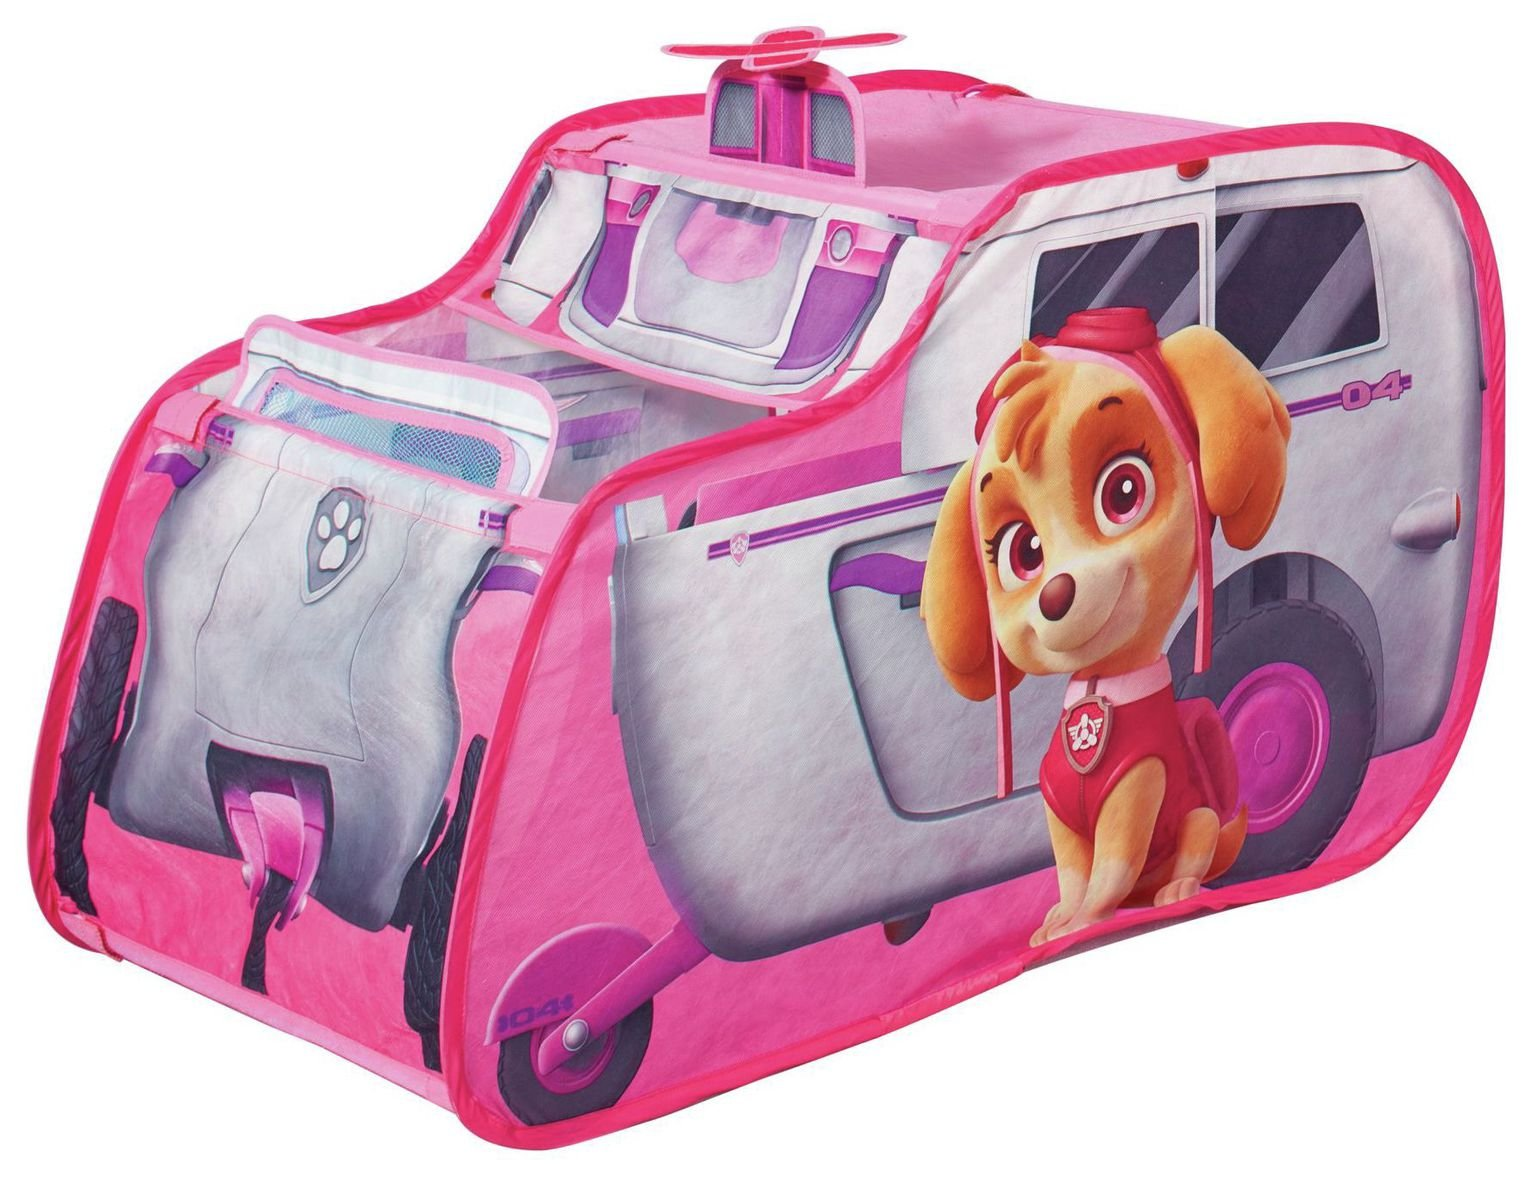 PAW Patrol Skyeu0027s Helicopter Pop Up Playtent  sc 1 st  Argos & Buy Pop Up Peppa Pigu0027s House Play Tent at Argos.co.uk - Your ...